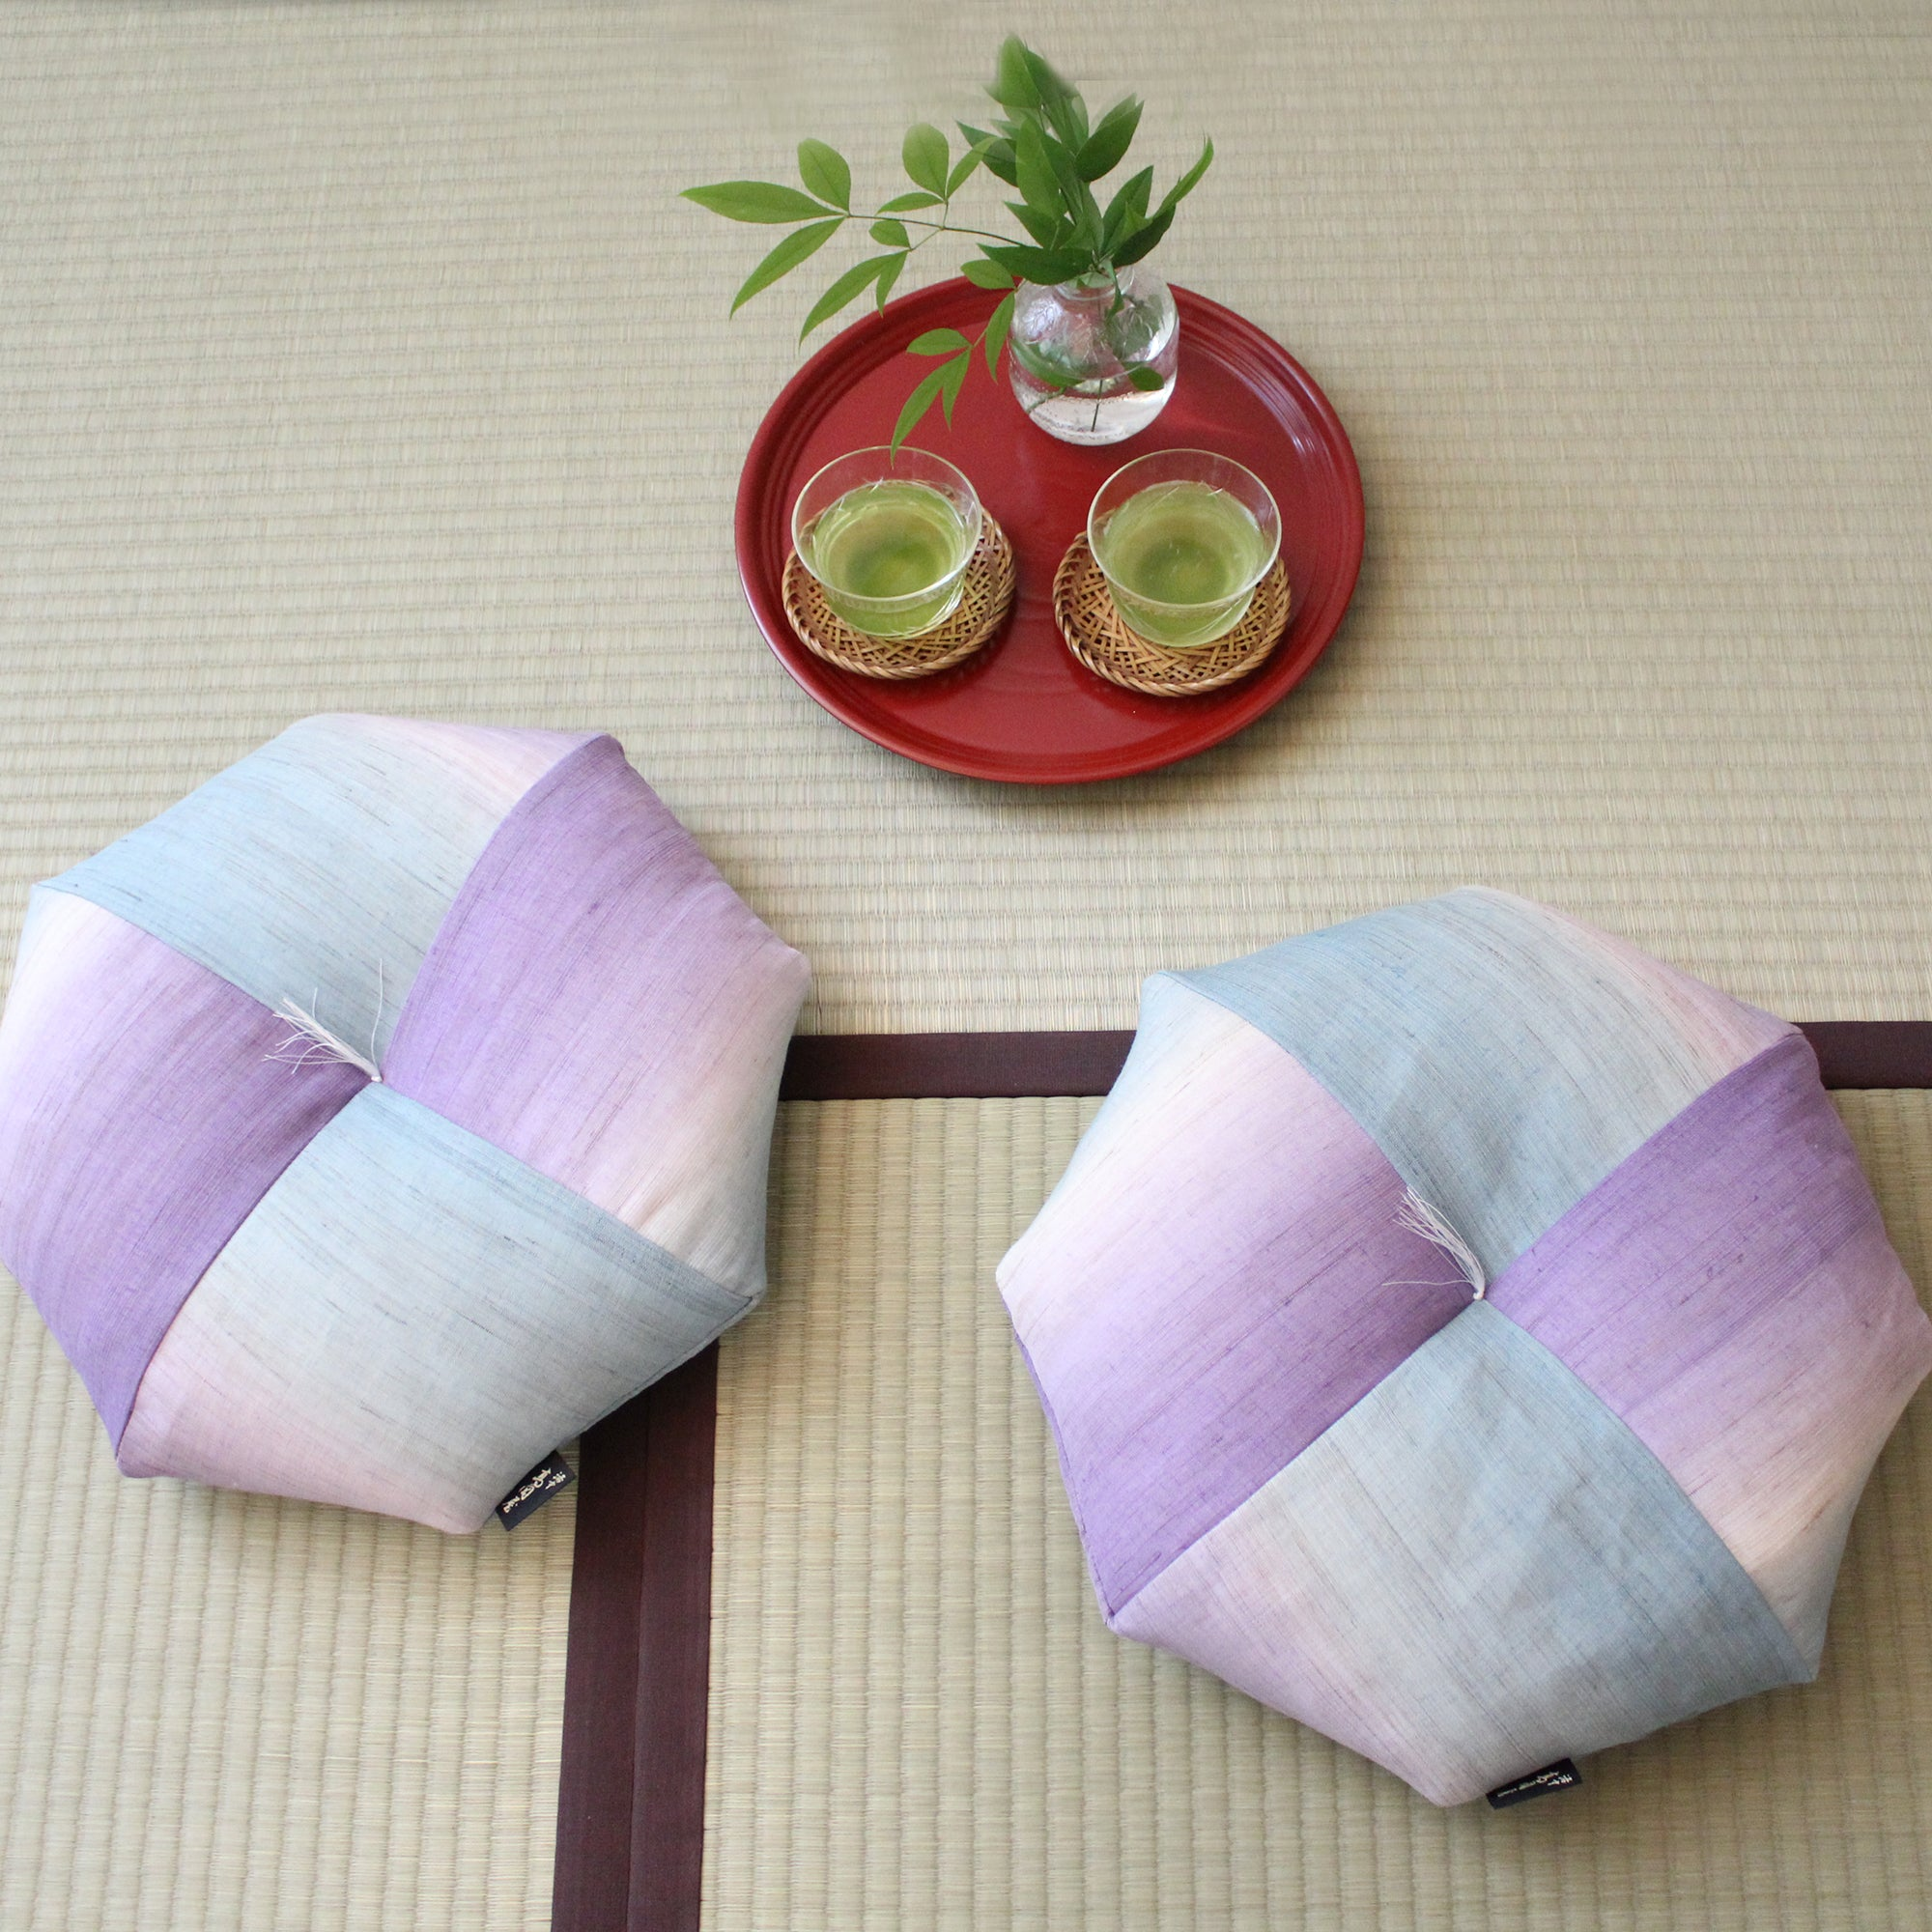 Ojami Flat (Thicker type)  | Hikizome(Linen) | Kamogawa Blue and Arashiyama Bamboo Green | Cushion, Seat, Chair - Takaokaya